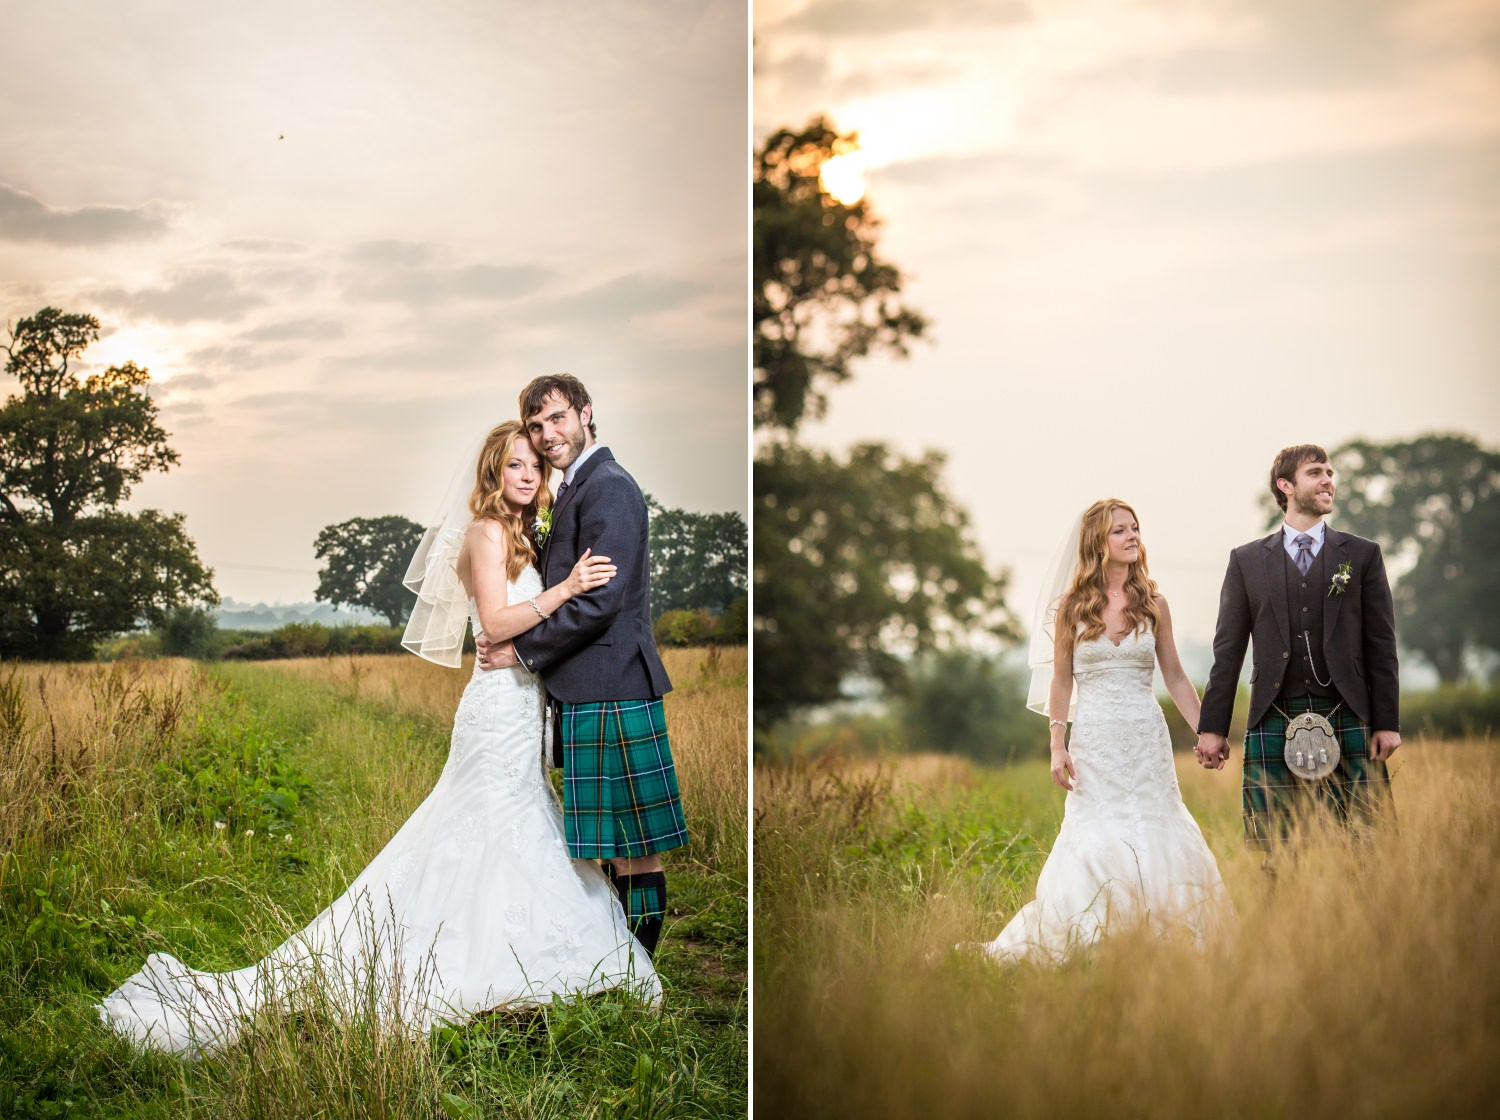 Wedding couple walking through field wedding photography at Cheshire venue Hundred House Hotel